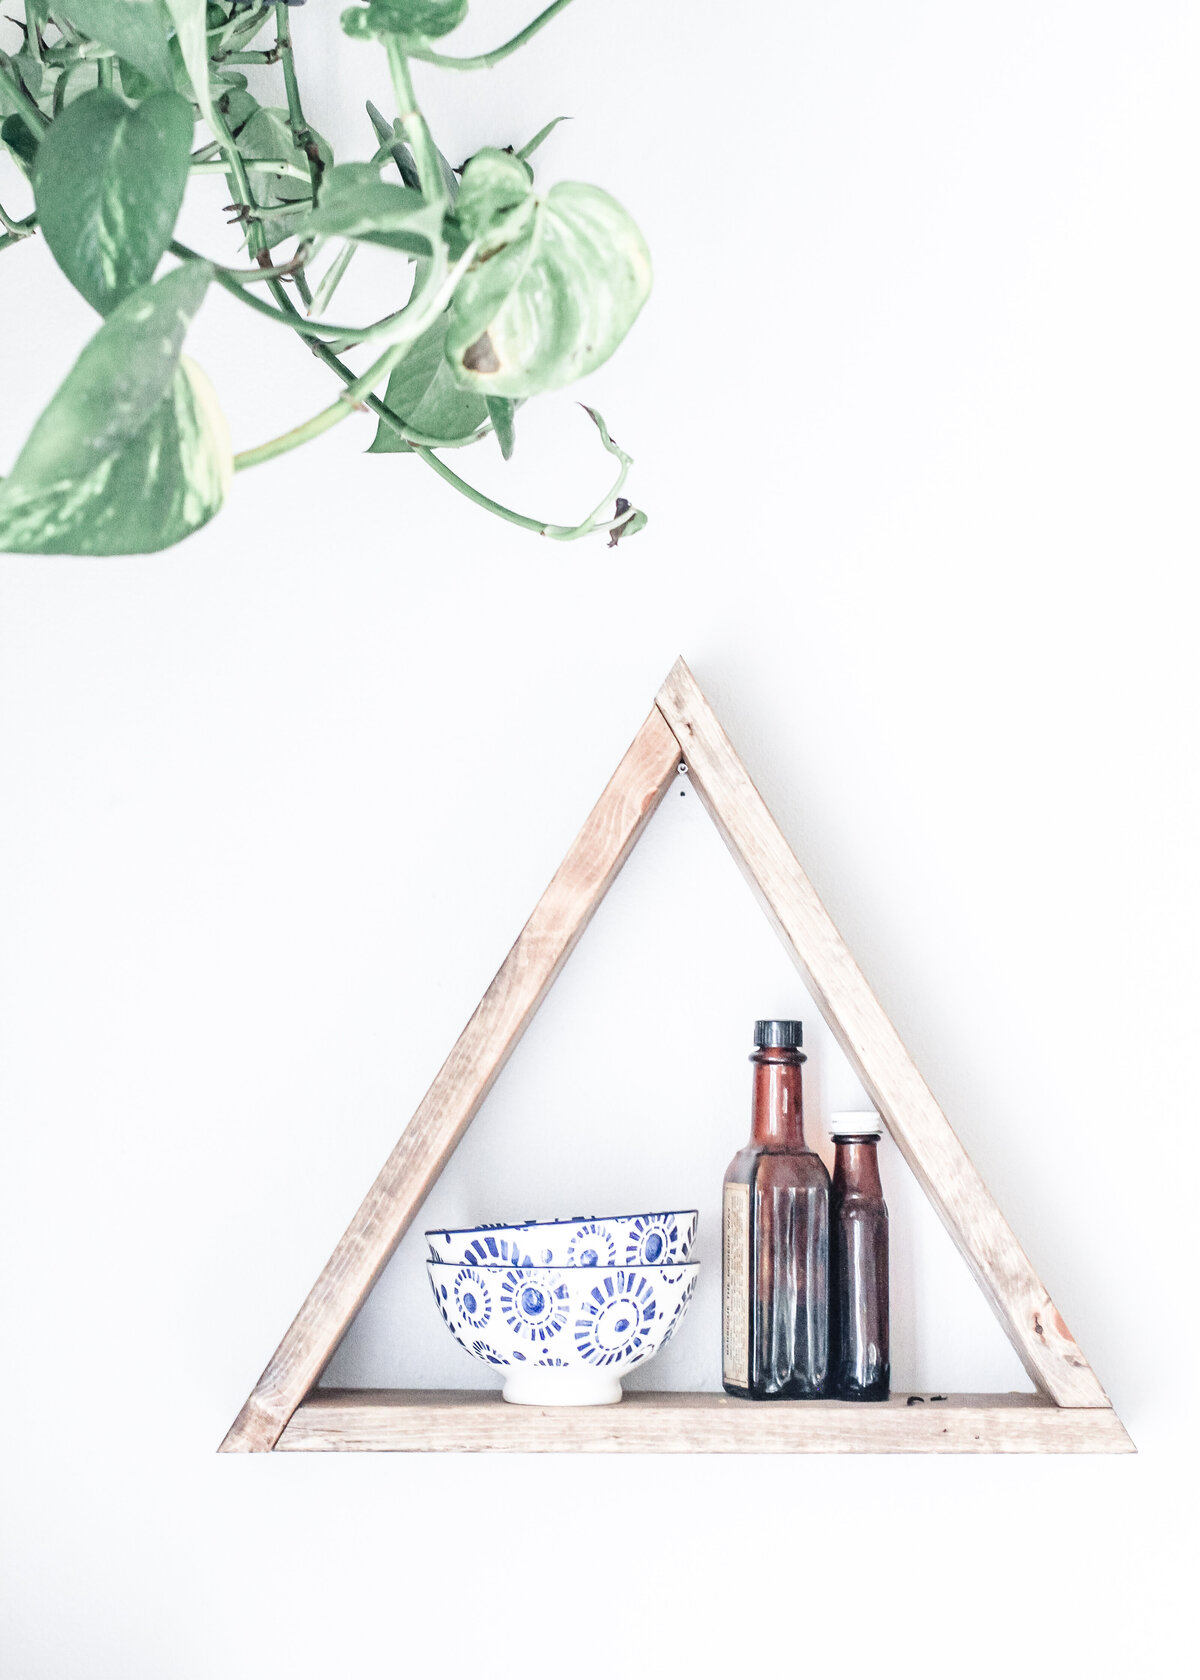 A close up image of a wooden triangle shelf with an ornate bowl and amber bottle.